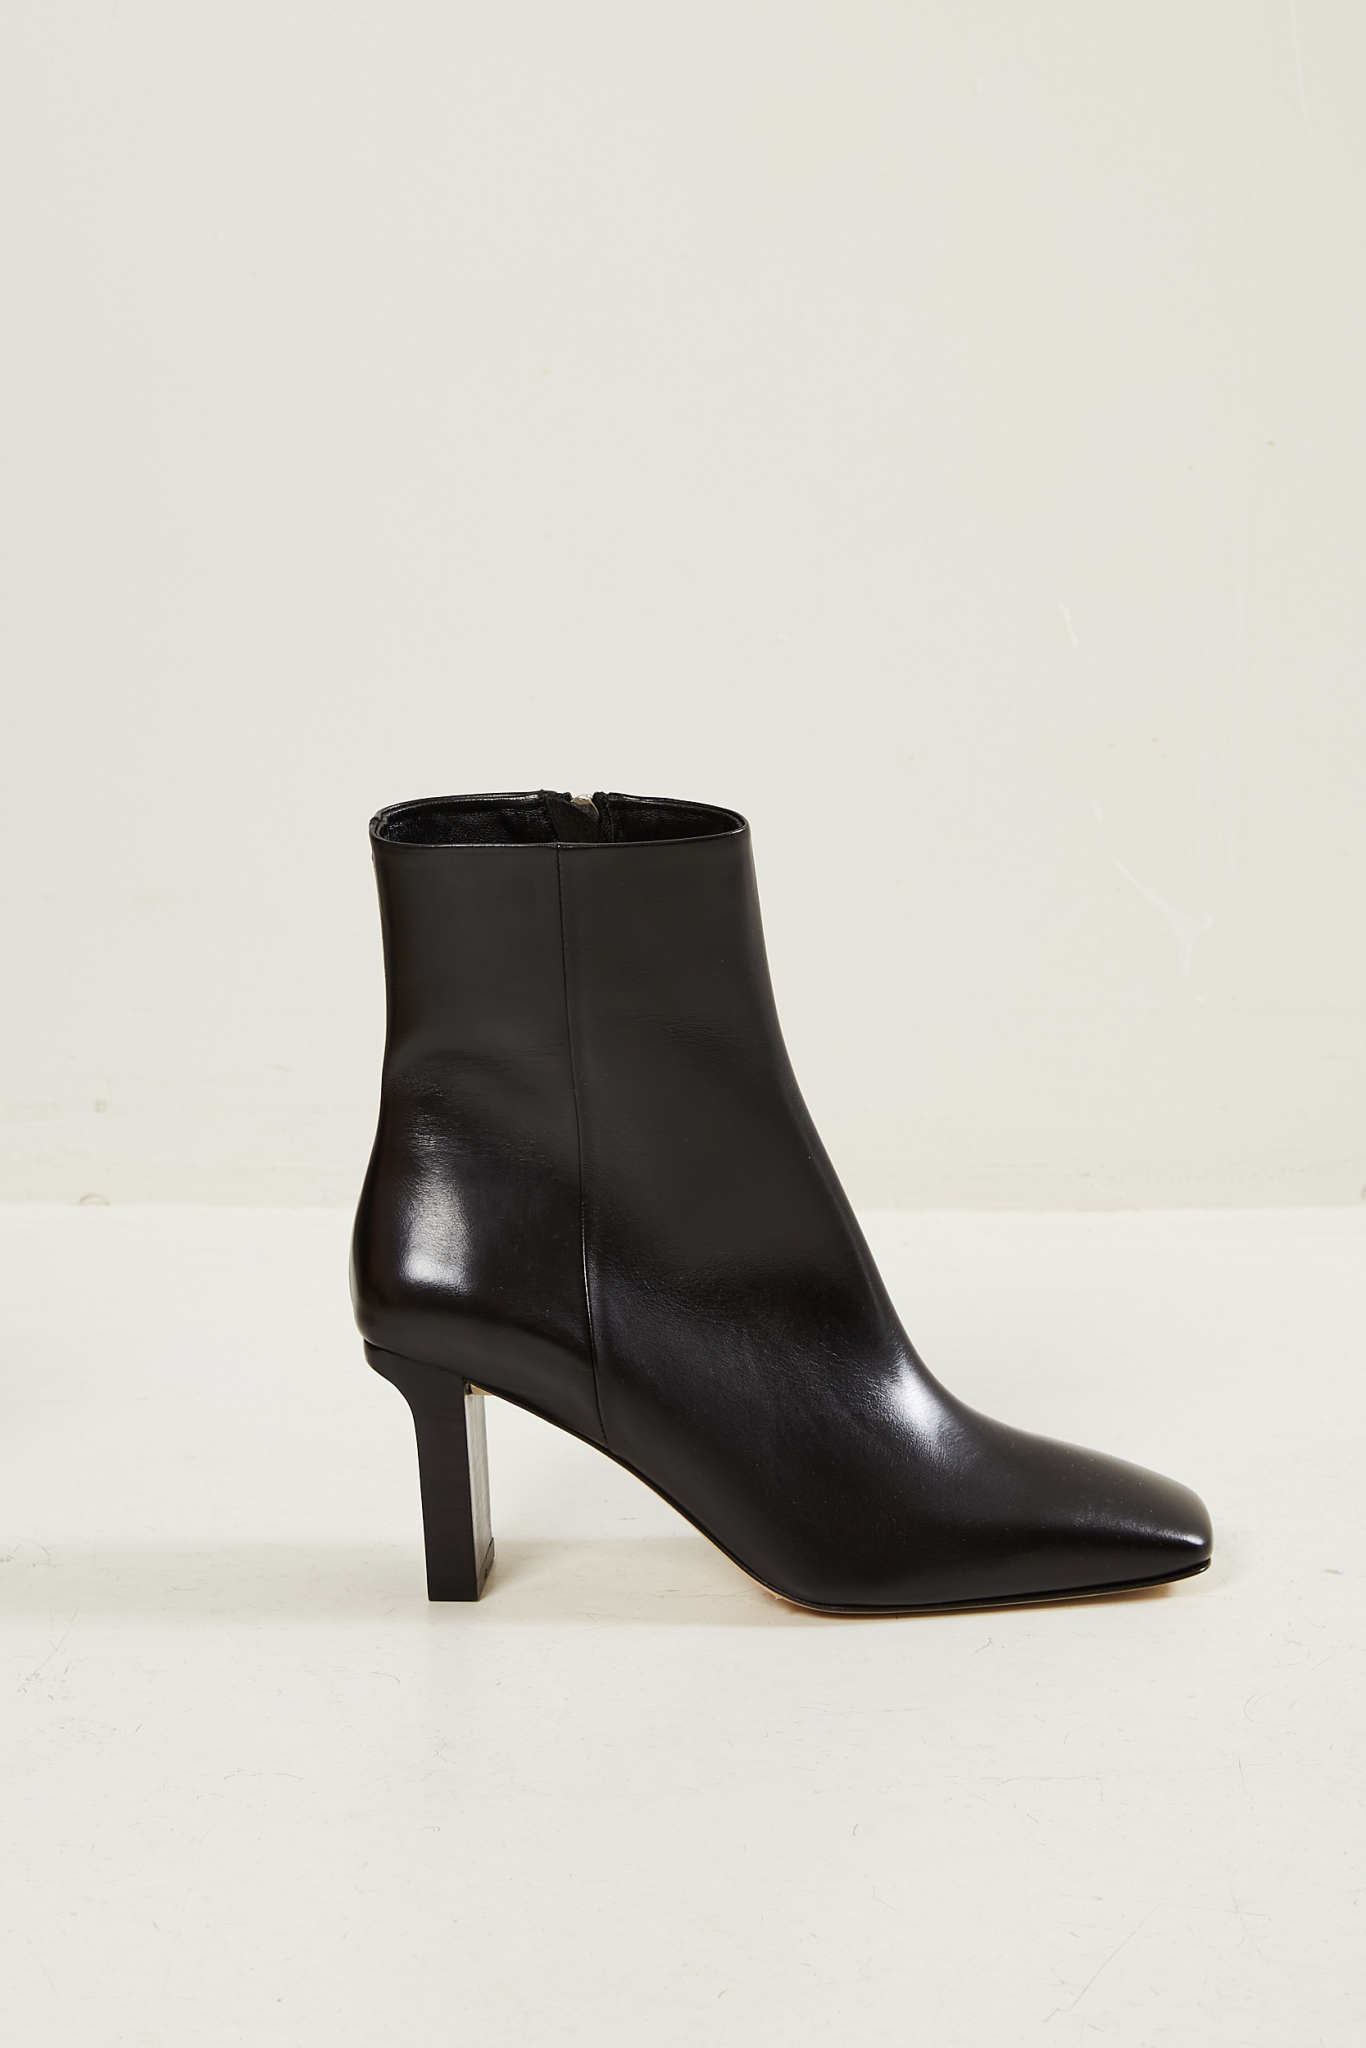 Aeyde - Billy calf leather boots black